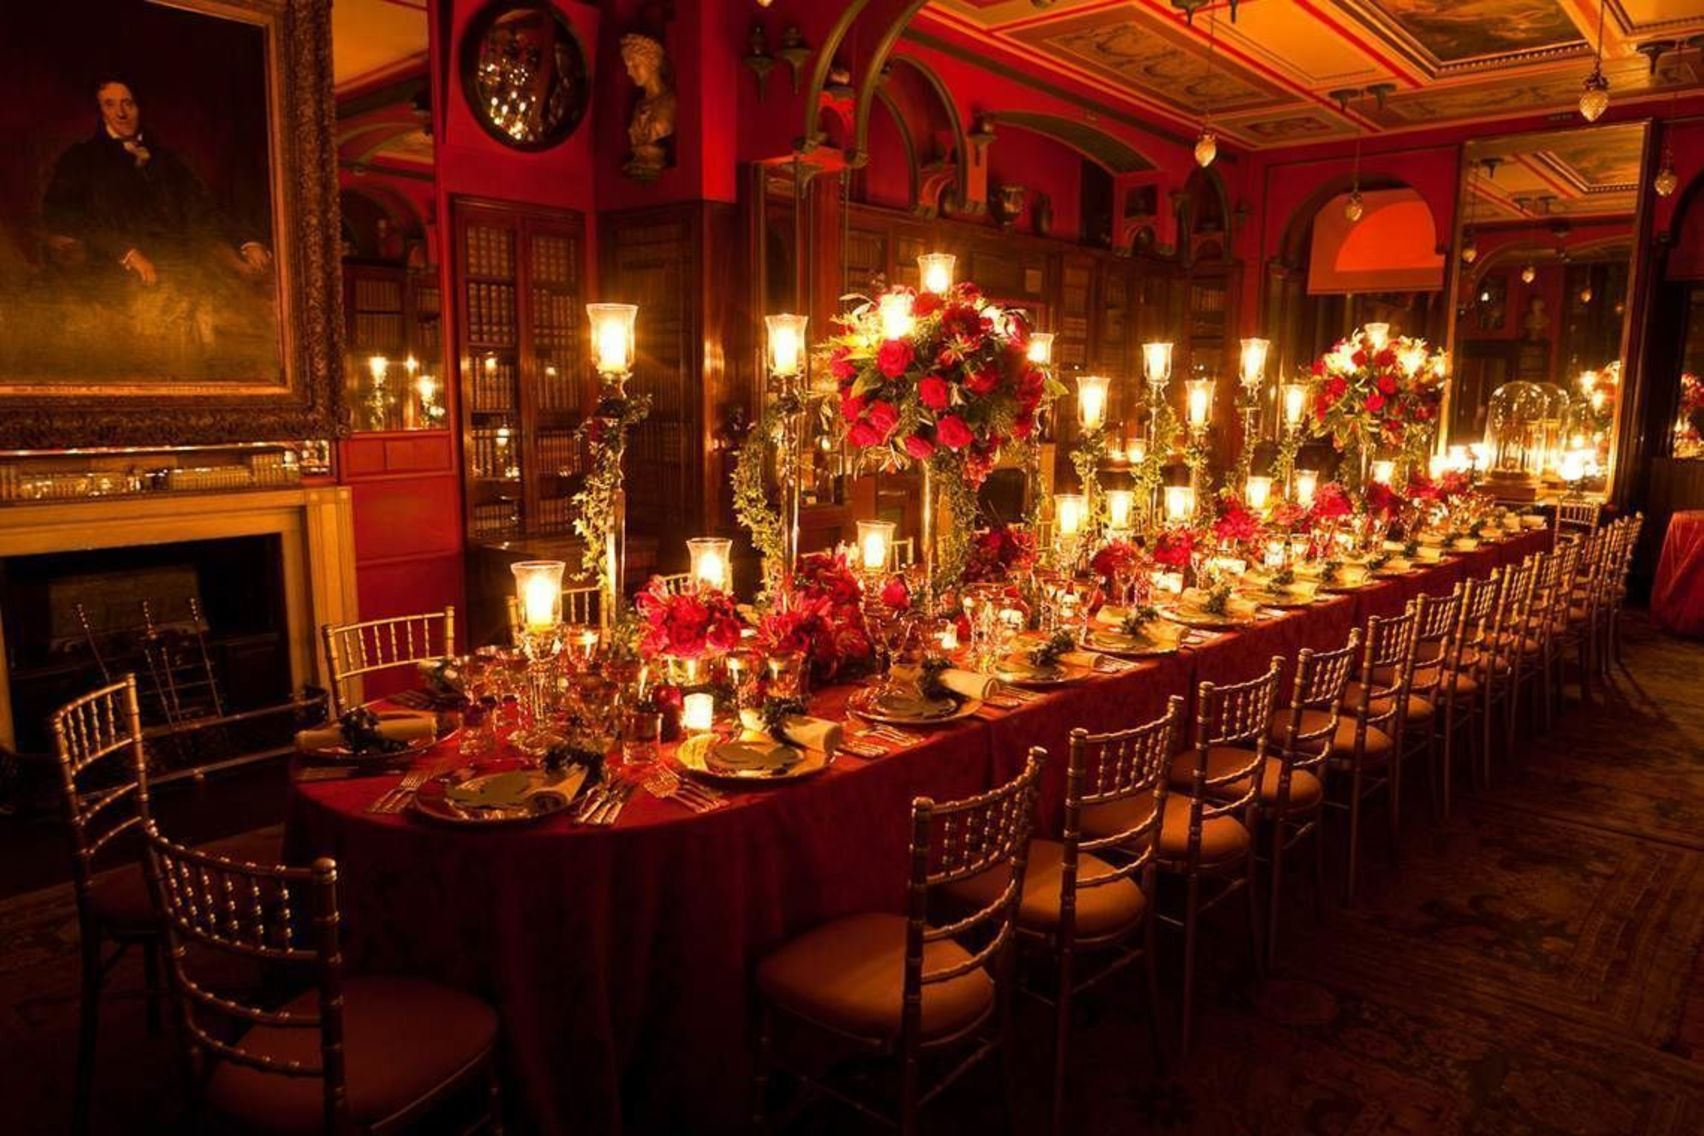 A long private dining room covered in candles and red flowers